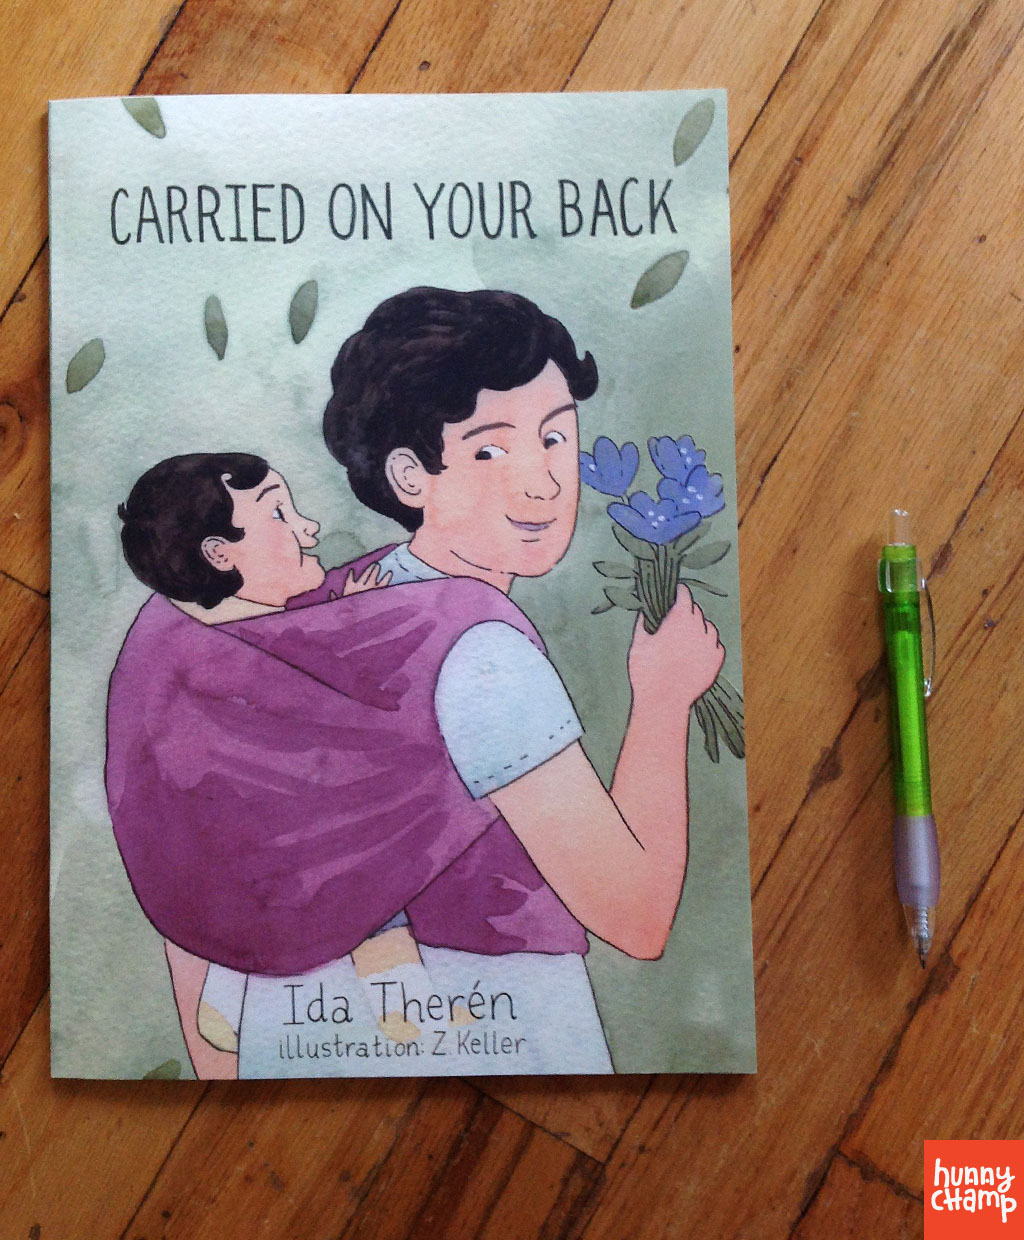 Carried on Your Back by Ida Therén